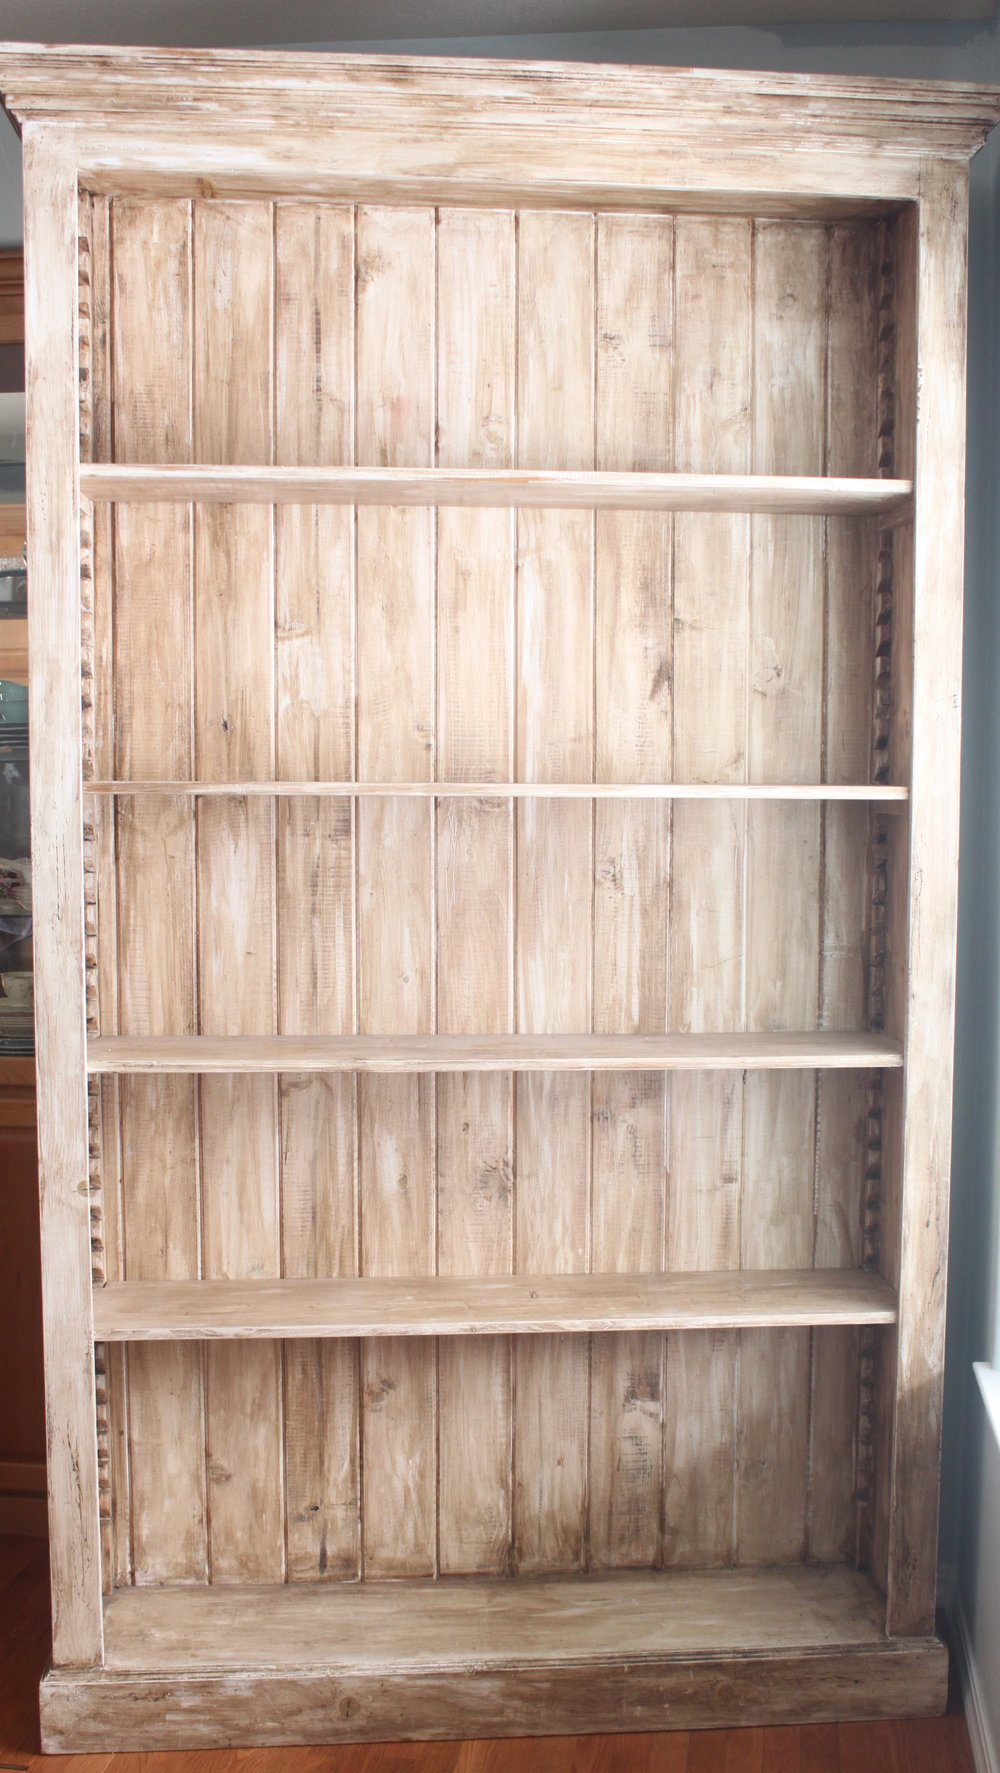 Milligan Bookcase $100/ea.